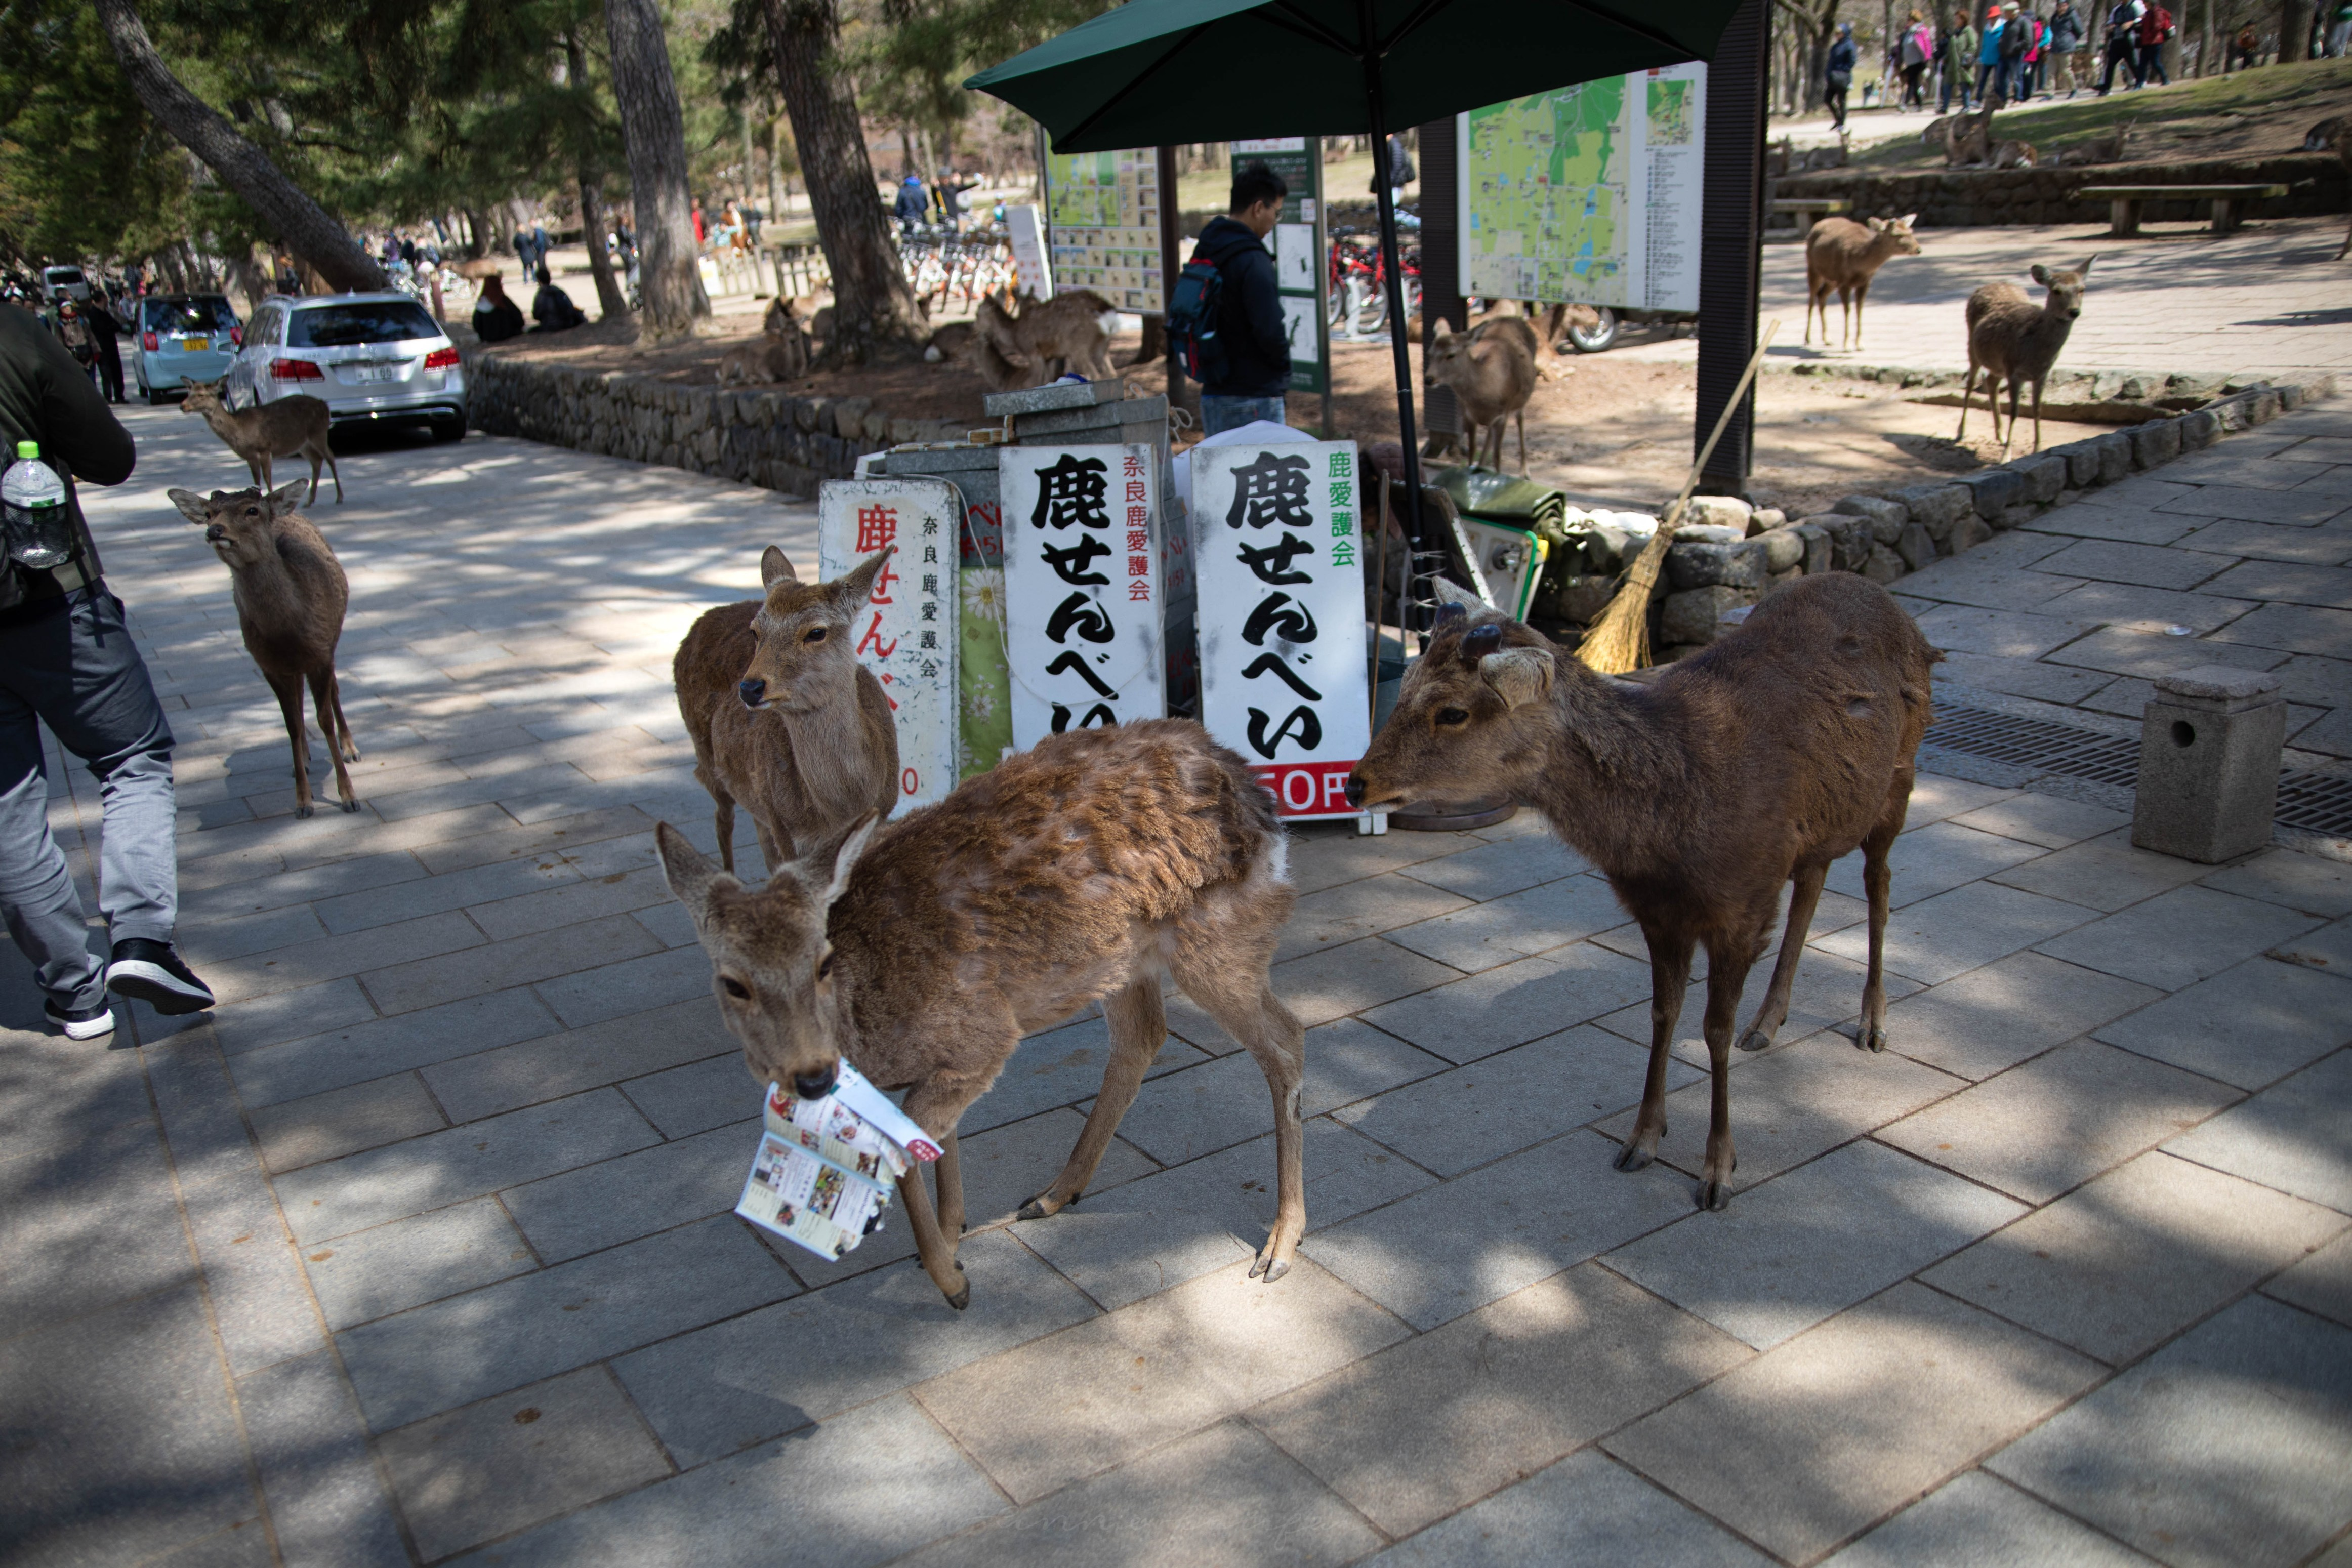 Nara: The Ultimate Travel Guide Written, Researched and Photographed by Annie Fairfax Nara Sacred Deer Park